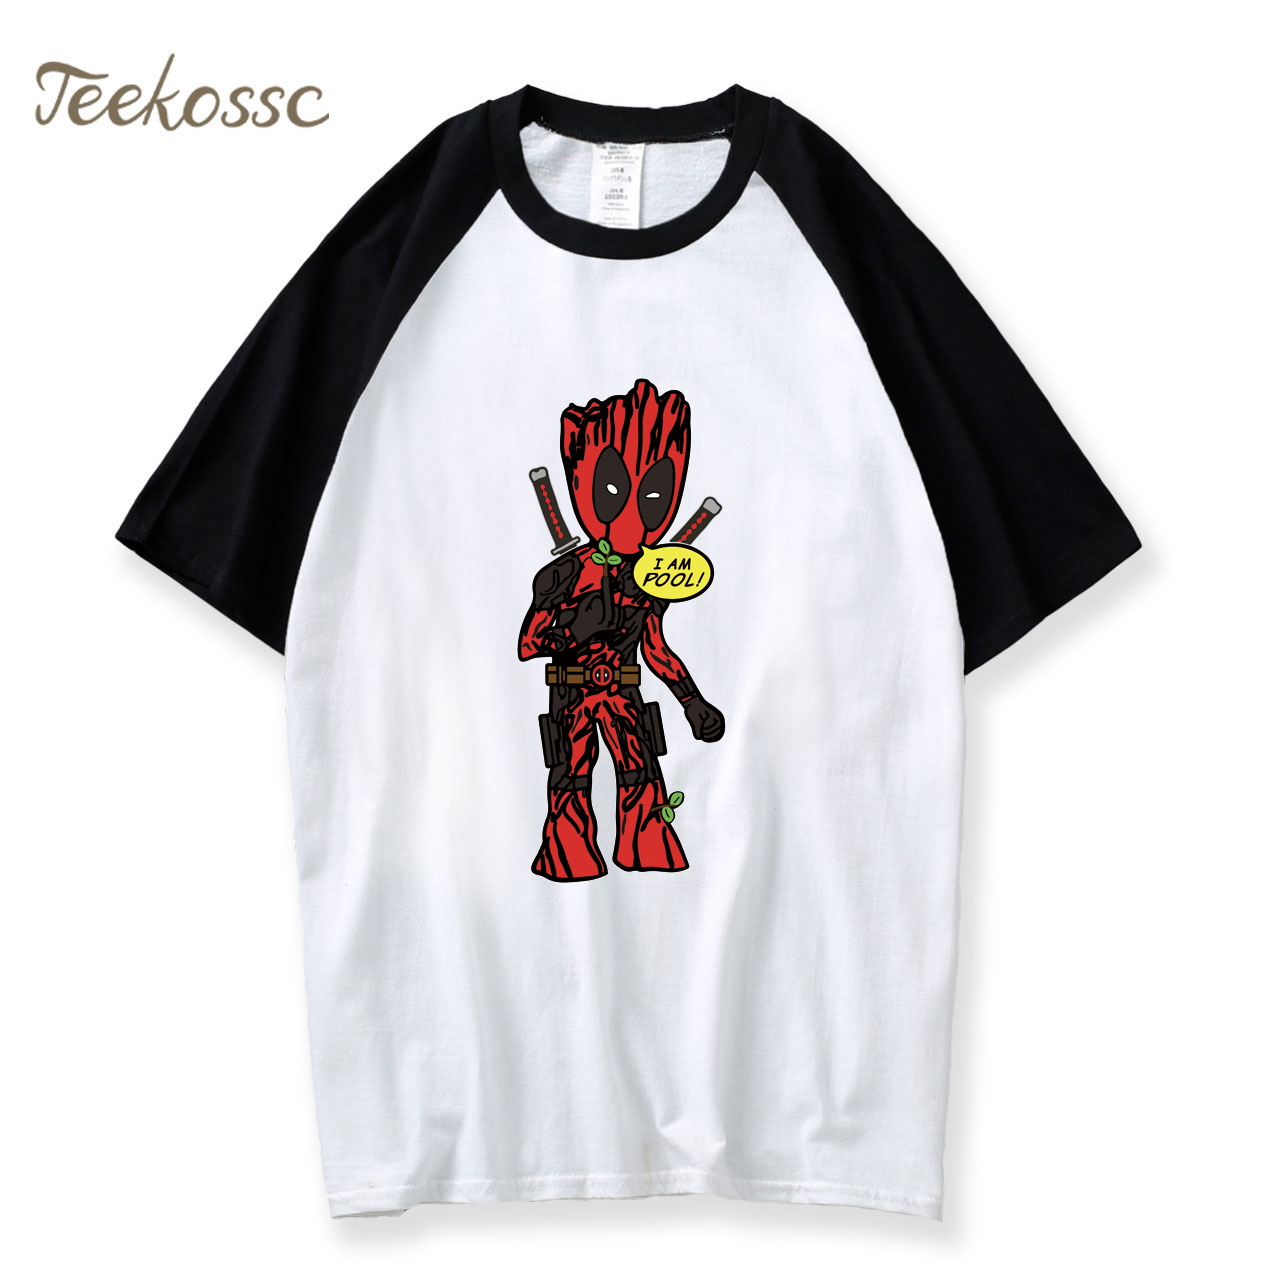 I AM GROOT T Shirt Men DeadPool Super Hero Harajuku Tshirt 2018 Summer Tee Fitness Crossfit T Shirts Cotton Dead Pool T-Shirt